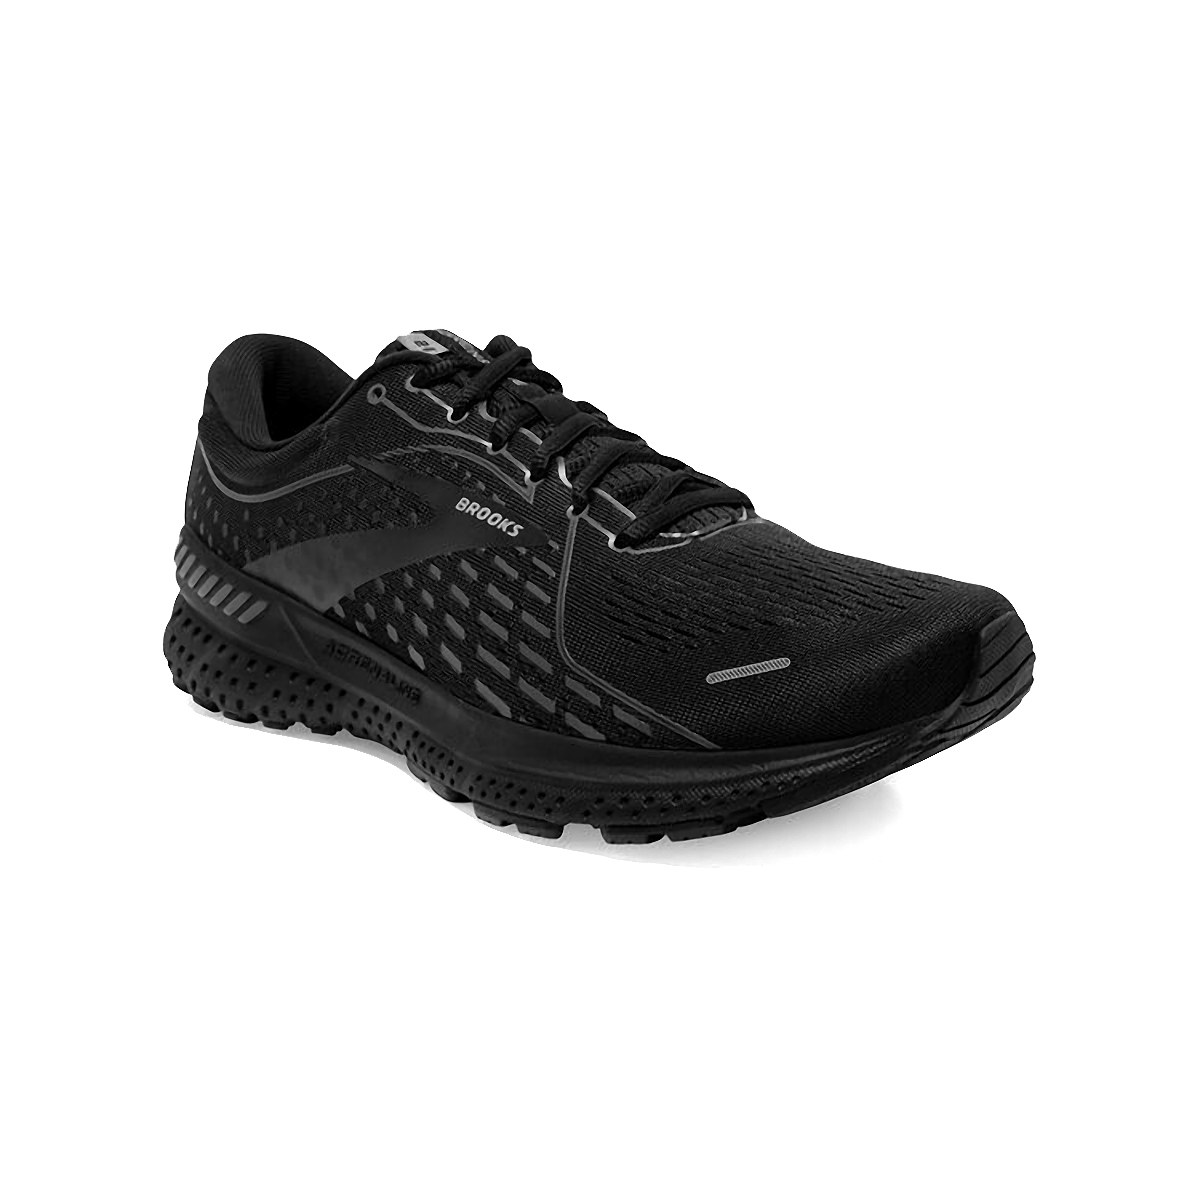 Men's Brooks Adrenaline GTS 21 Running Shoe - Color: Black/Black/Ebony - Size: 7 - Width: Regular, Black/Black/Ebony, large, image 3